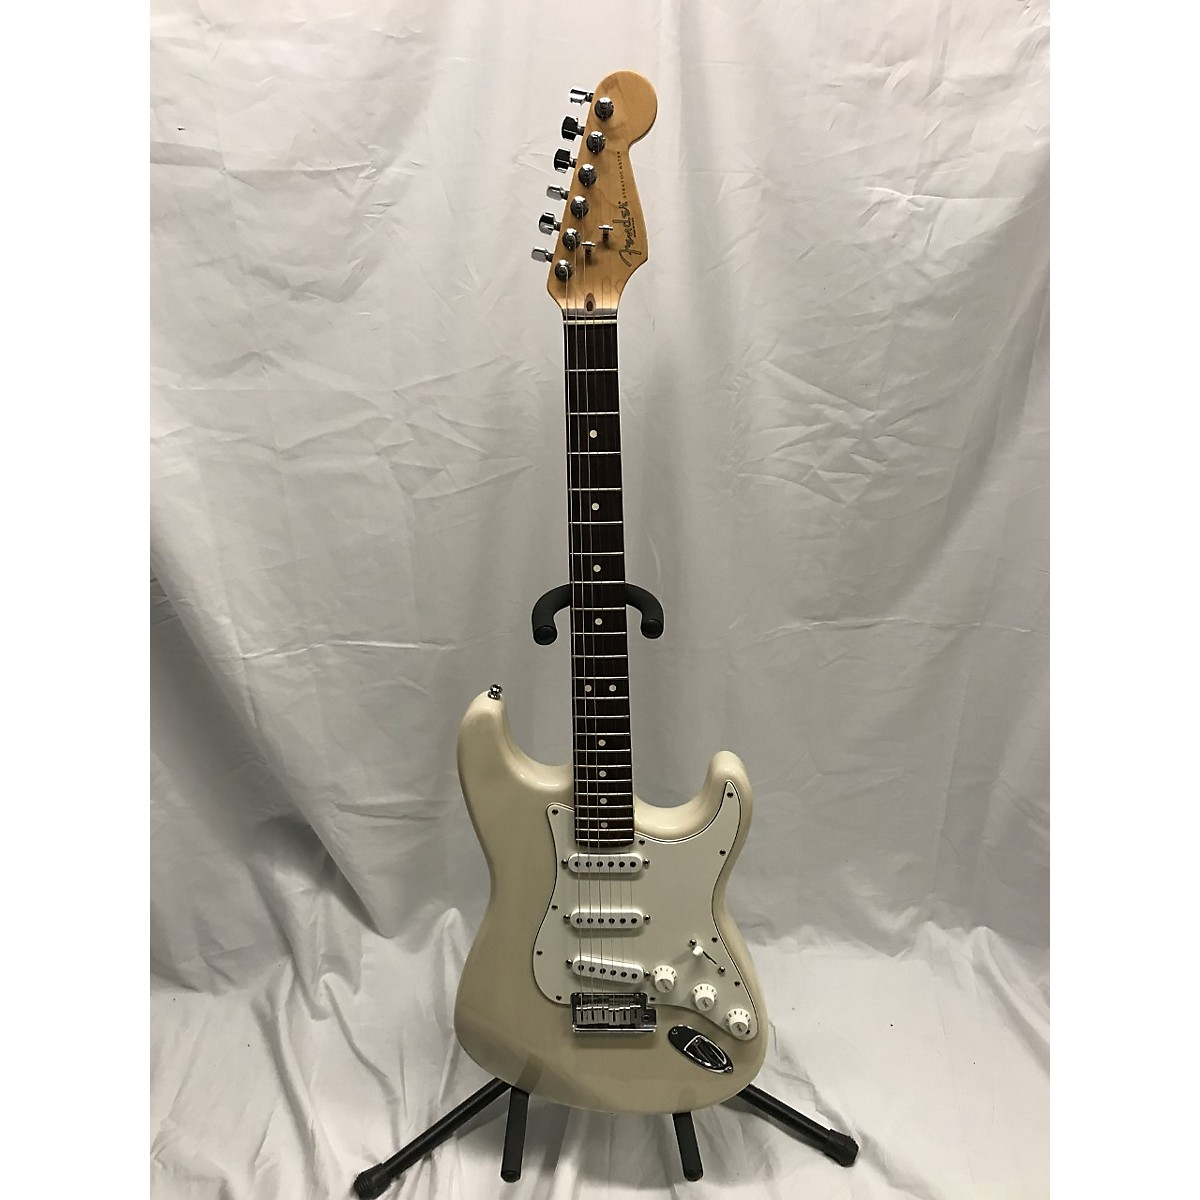 Fender 1994 American Standard Stratocaster Solid Body Electric Guitar